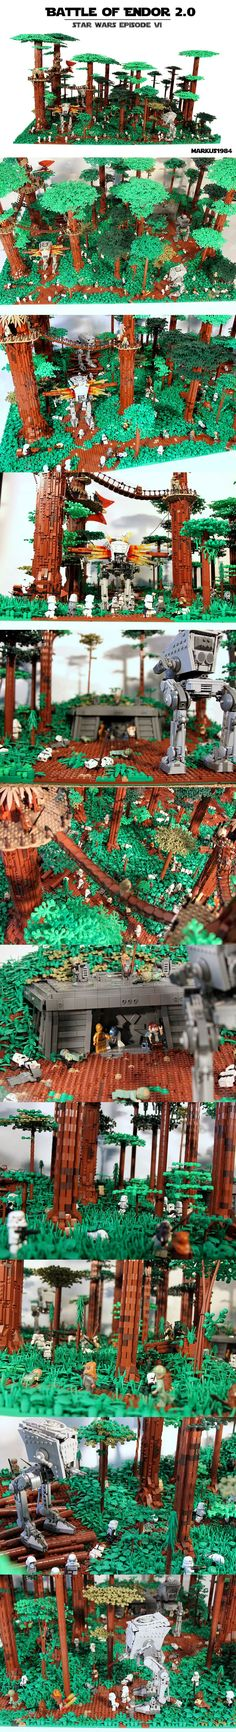 Lego: Battle of Endor